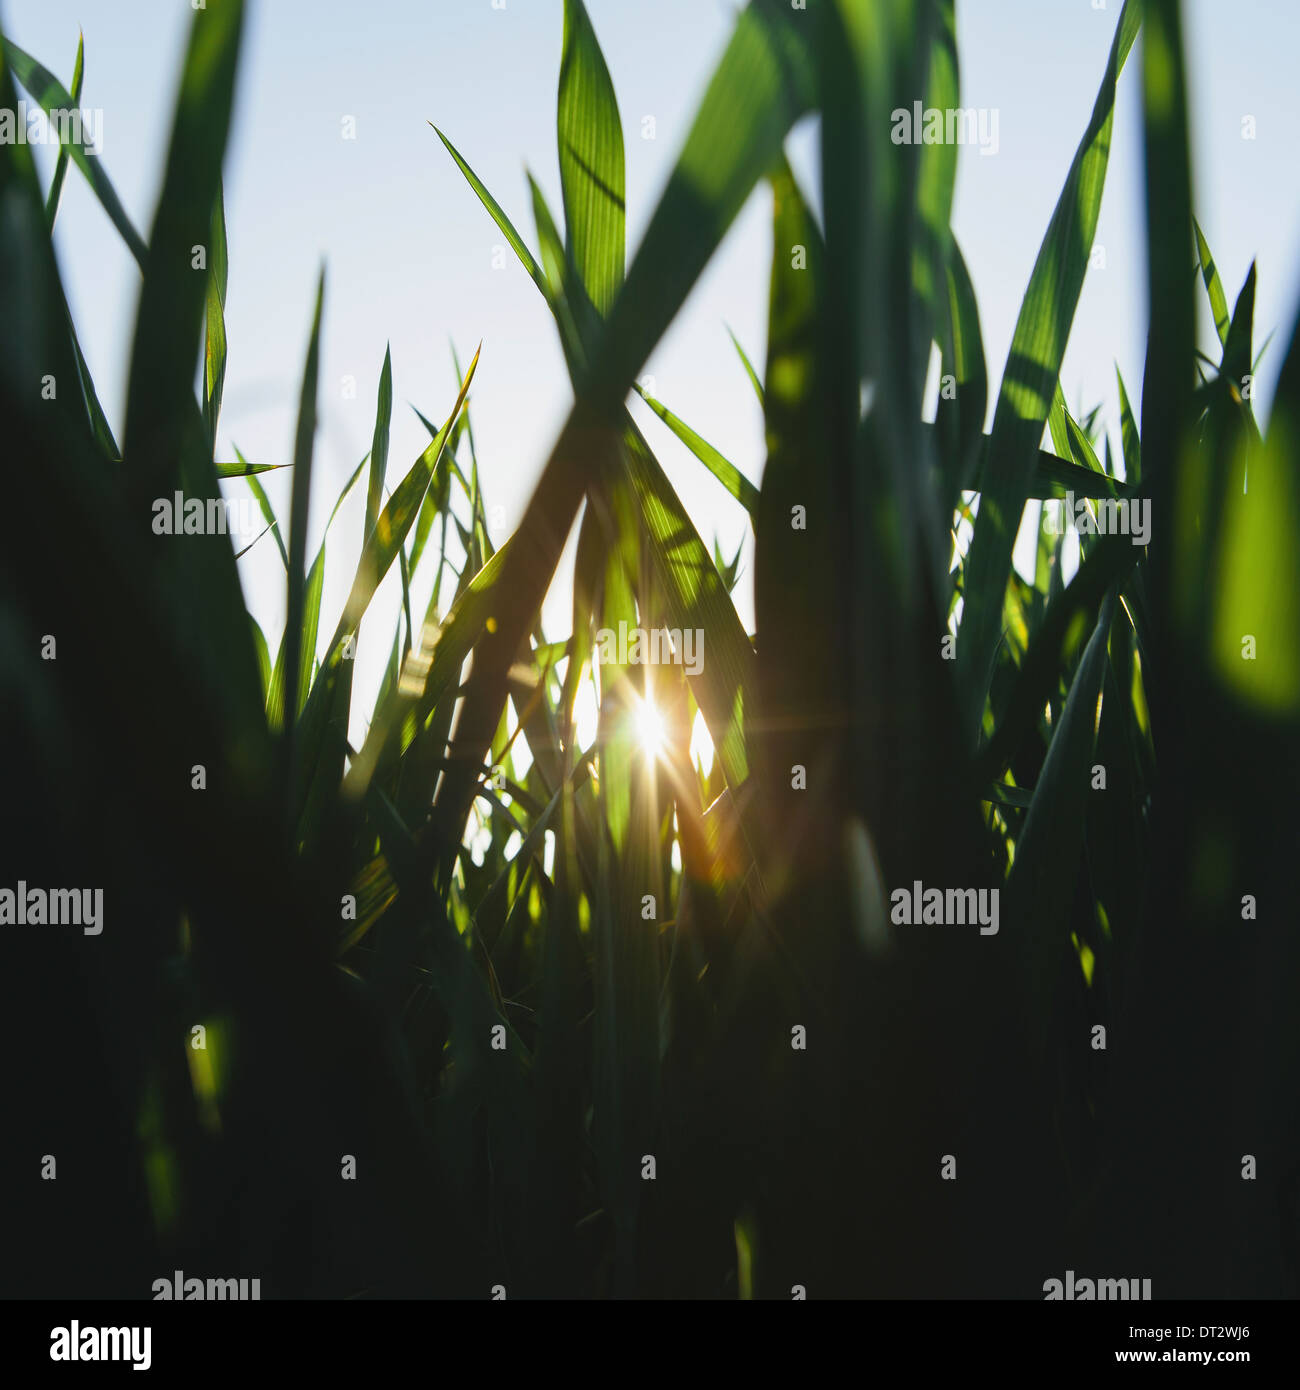 green lush field of wheat and the setting sun behind the stalks and stems at dusk near Pullman in Washington state USA - Stock Image